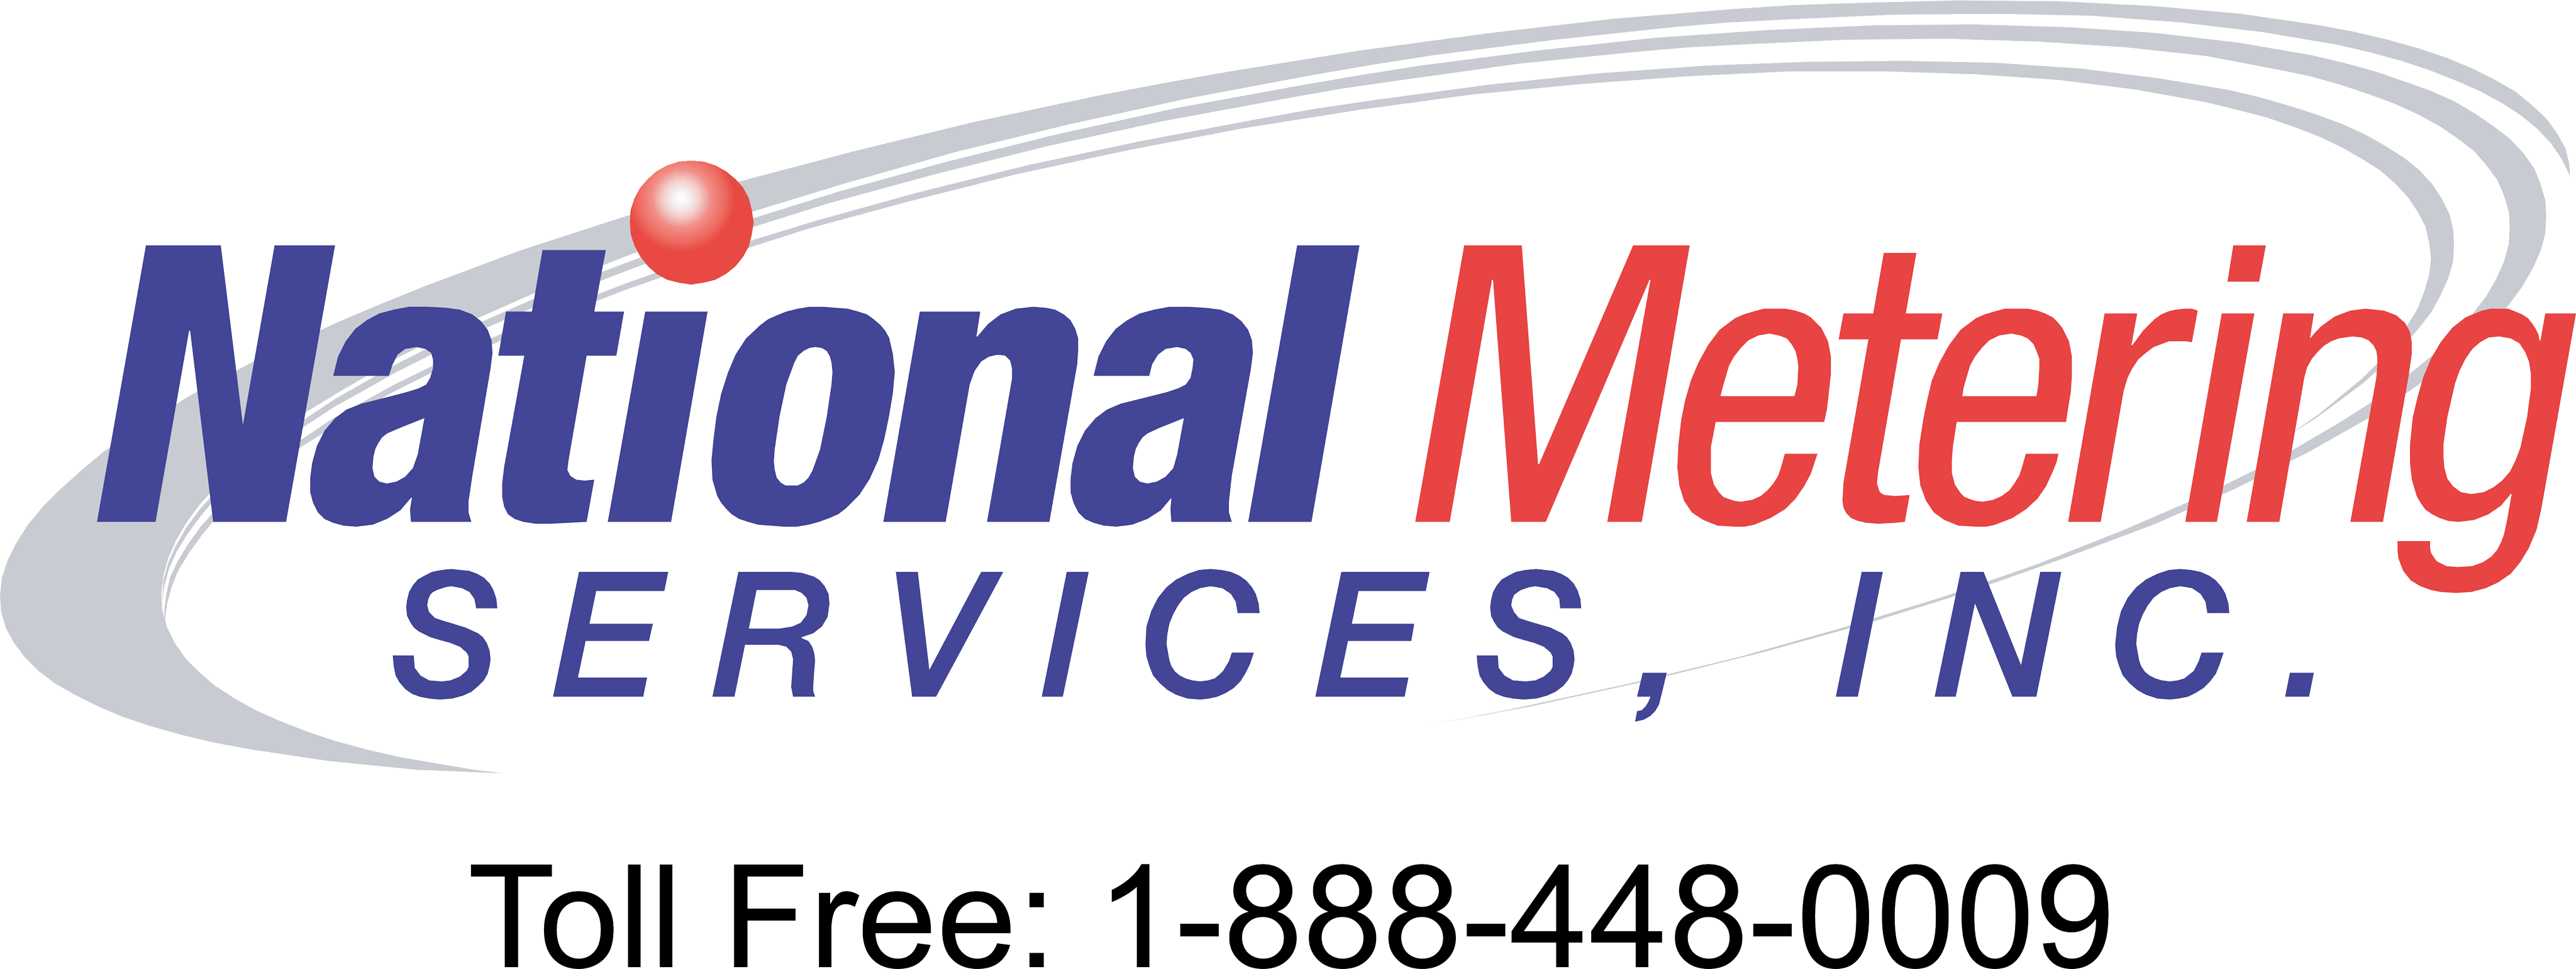 National Metering Services, Inc.